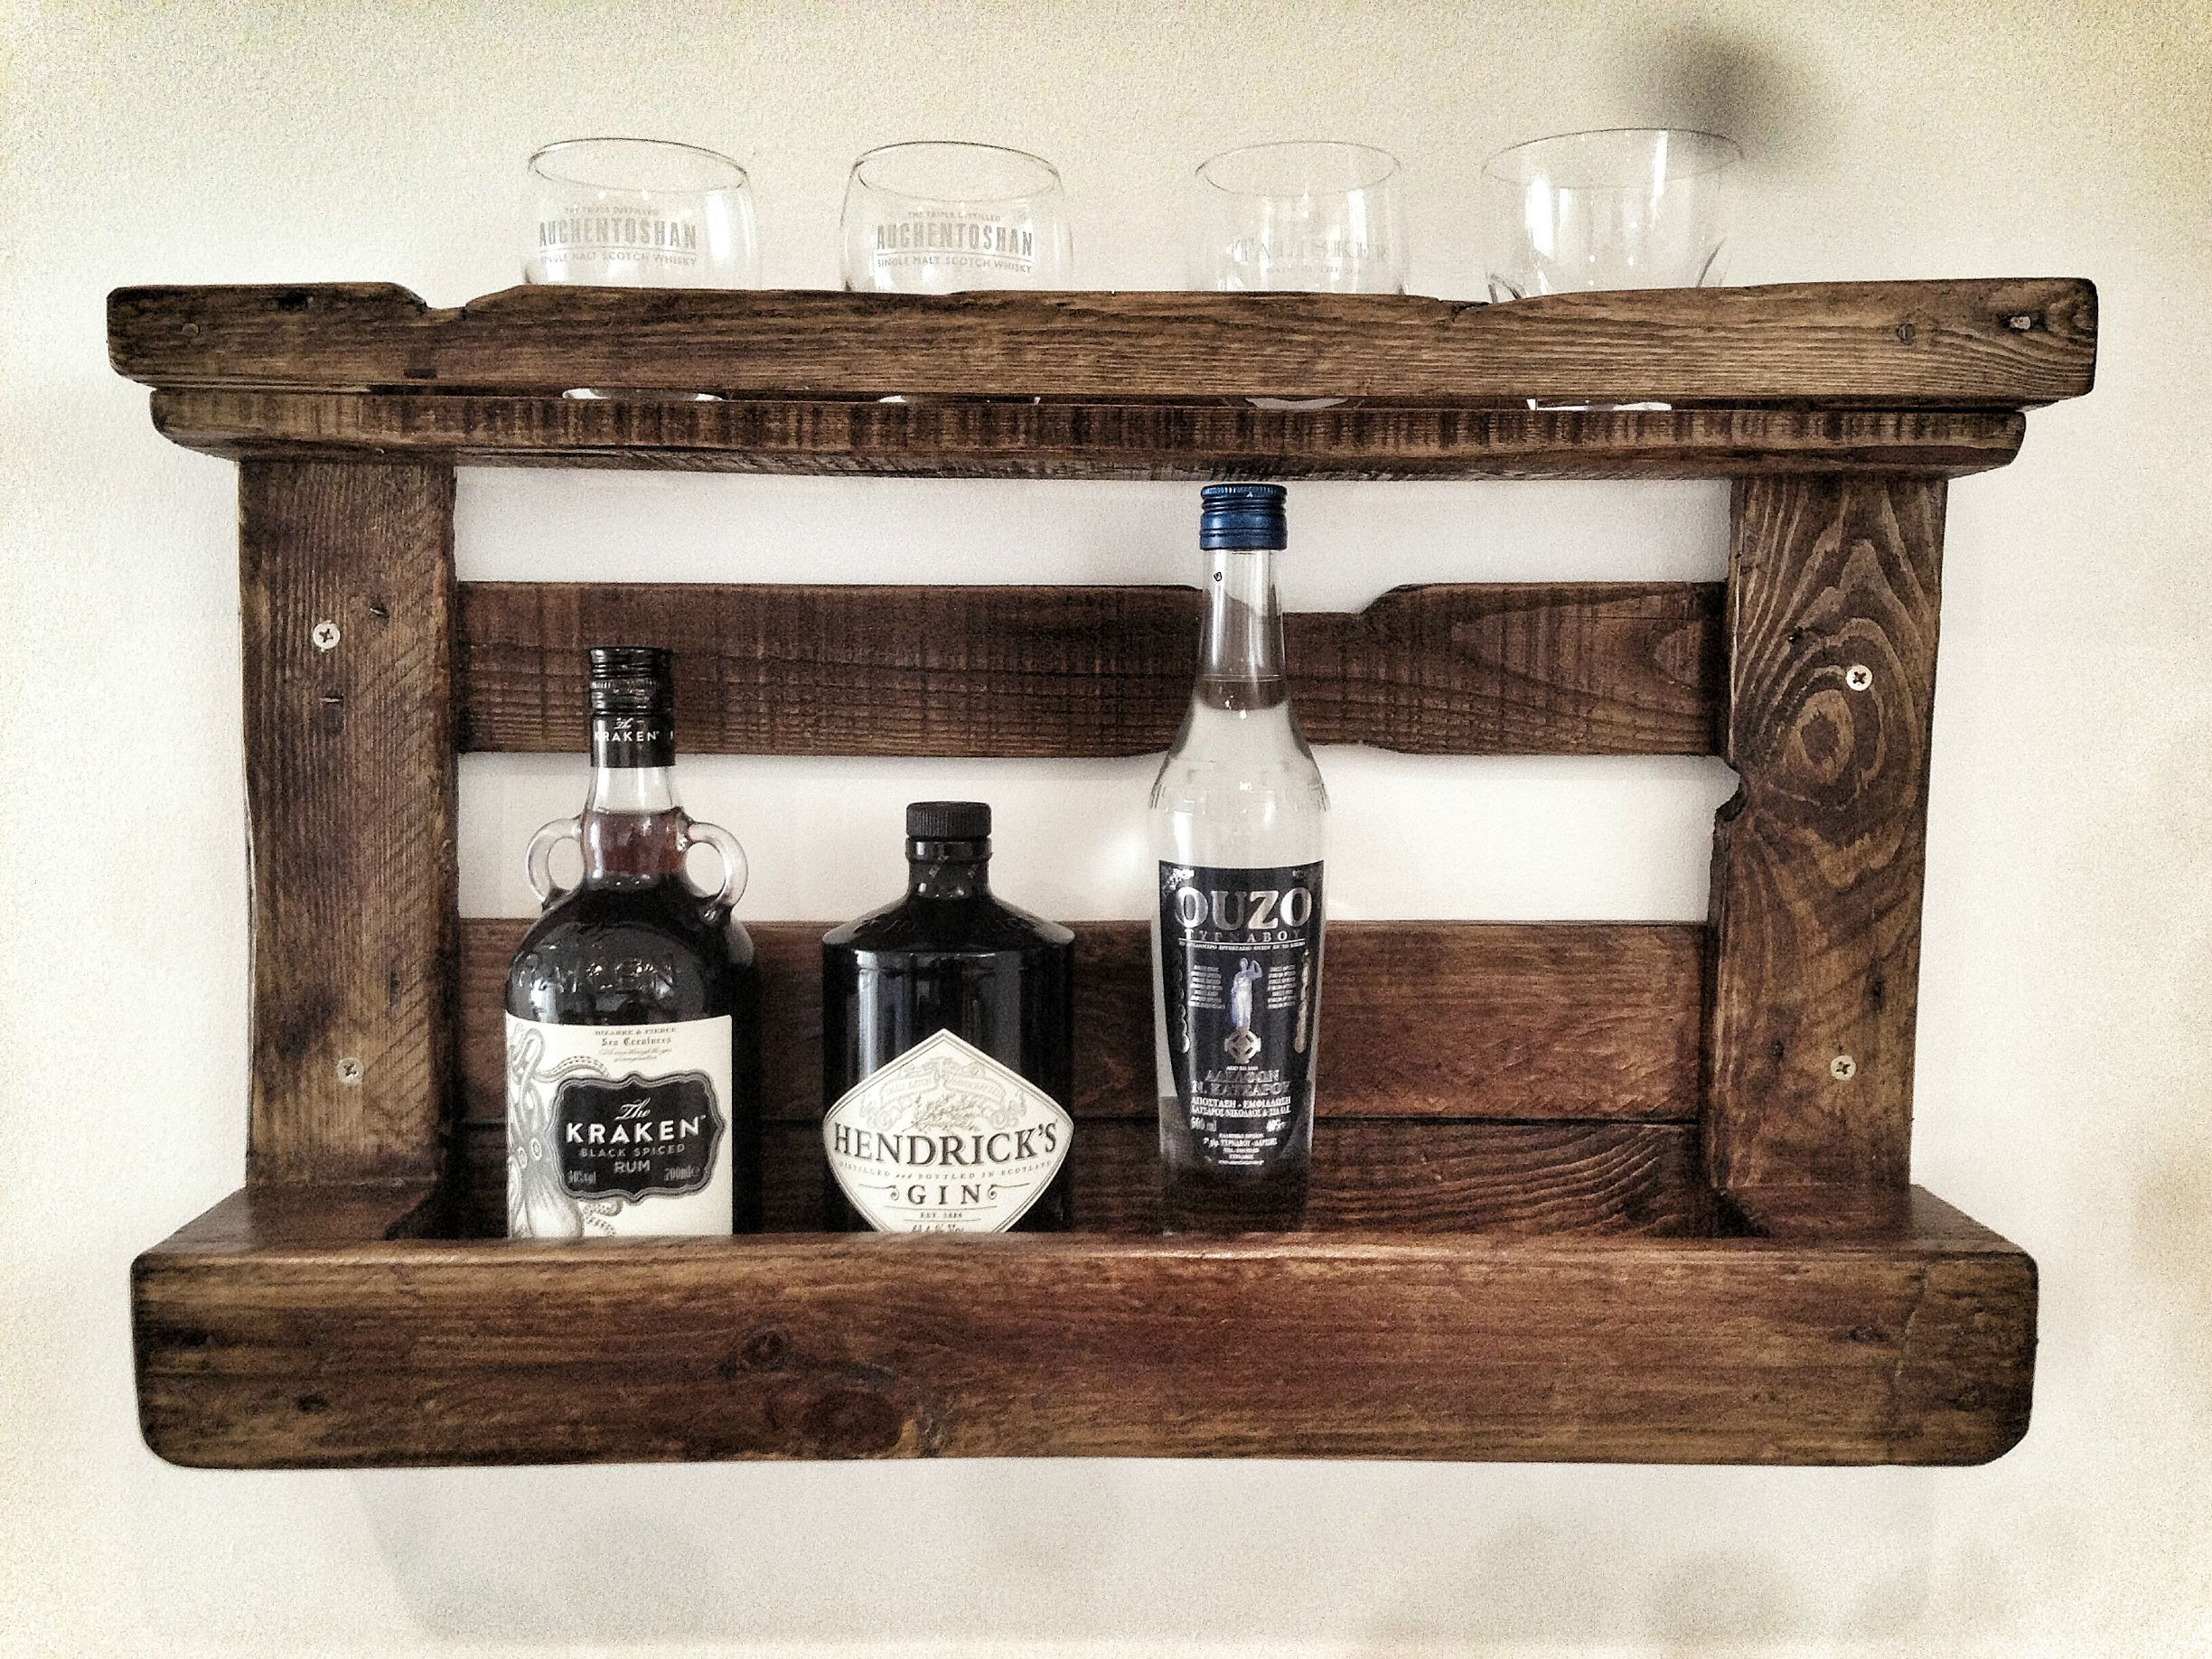 I build a drinks rack out of an old pallet | woodworking | Pinterest ...